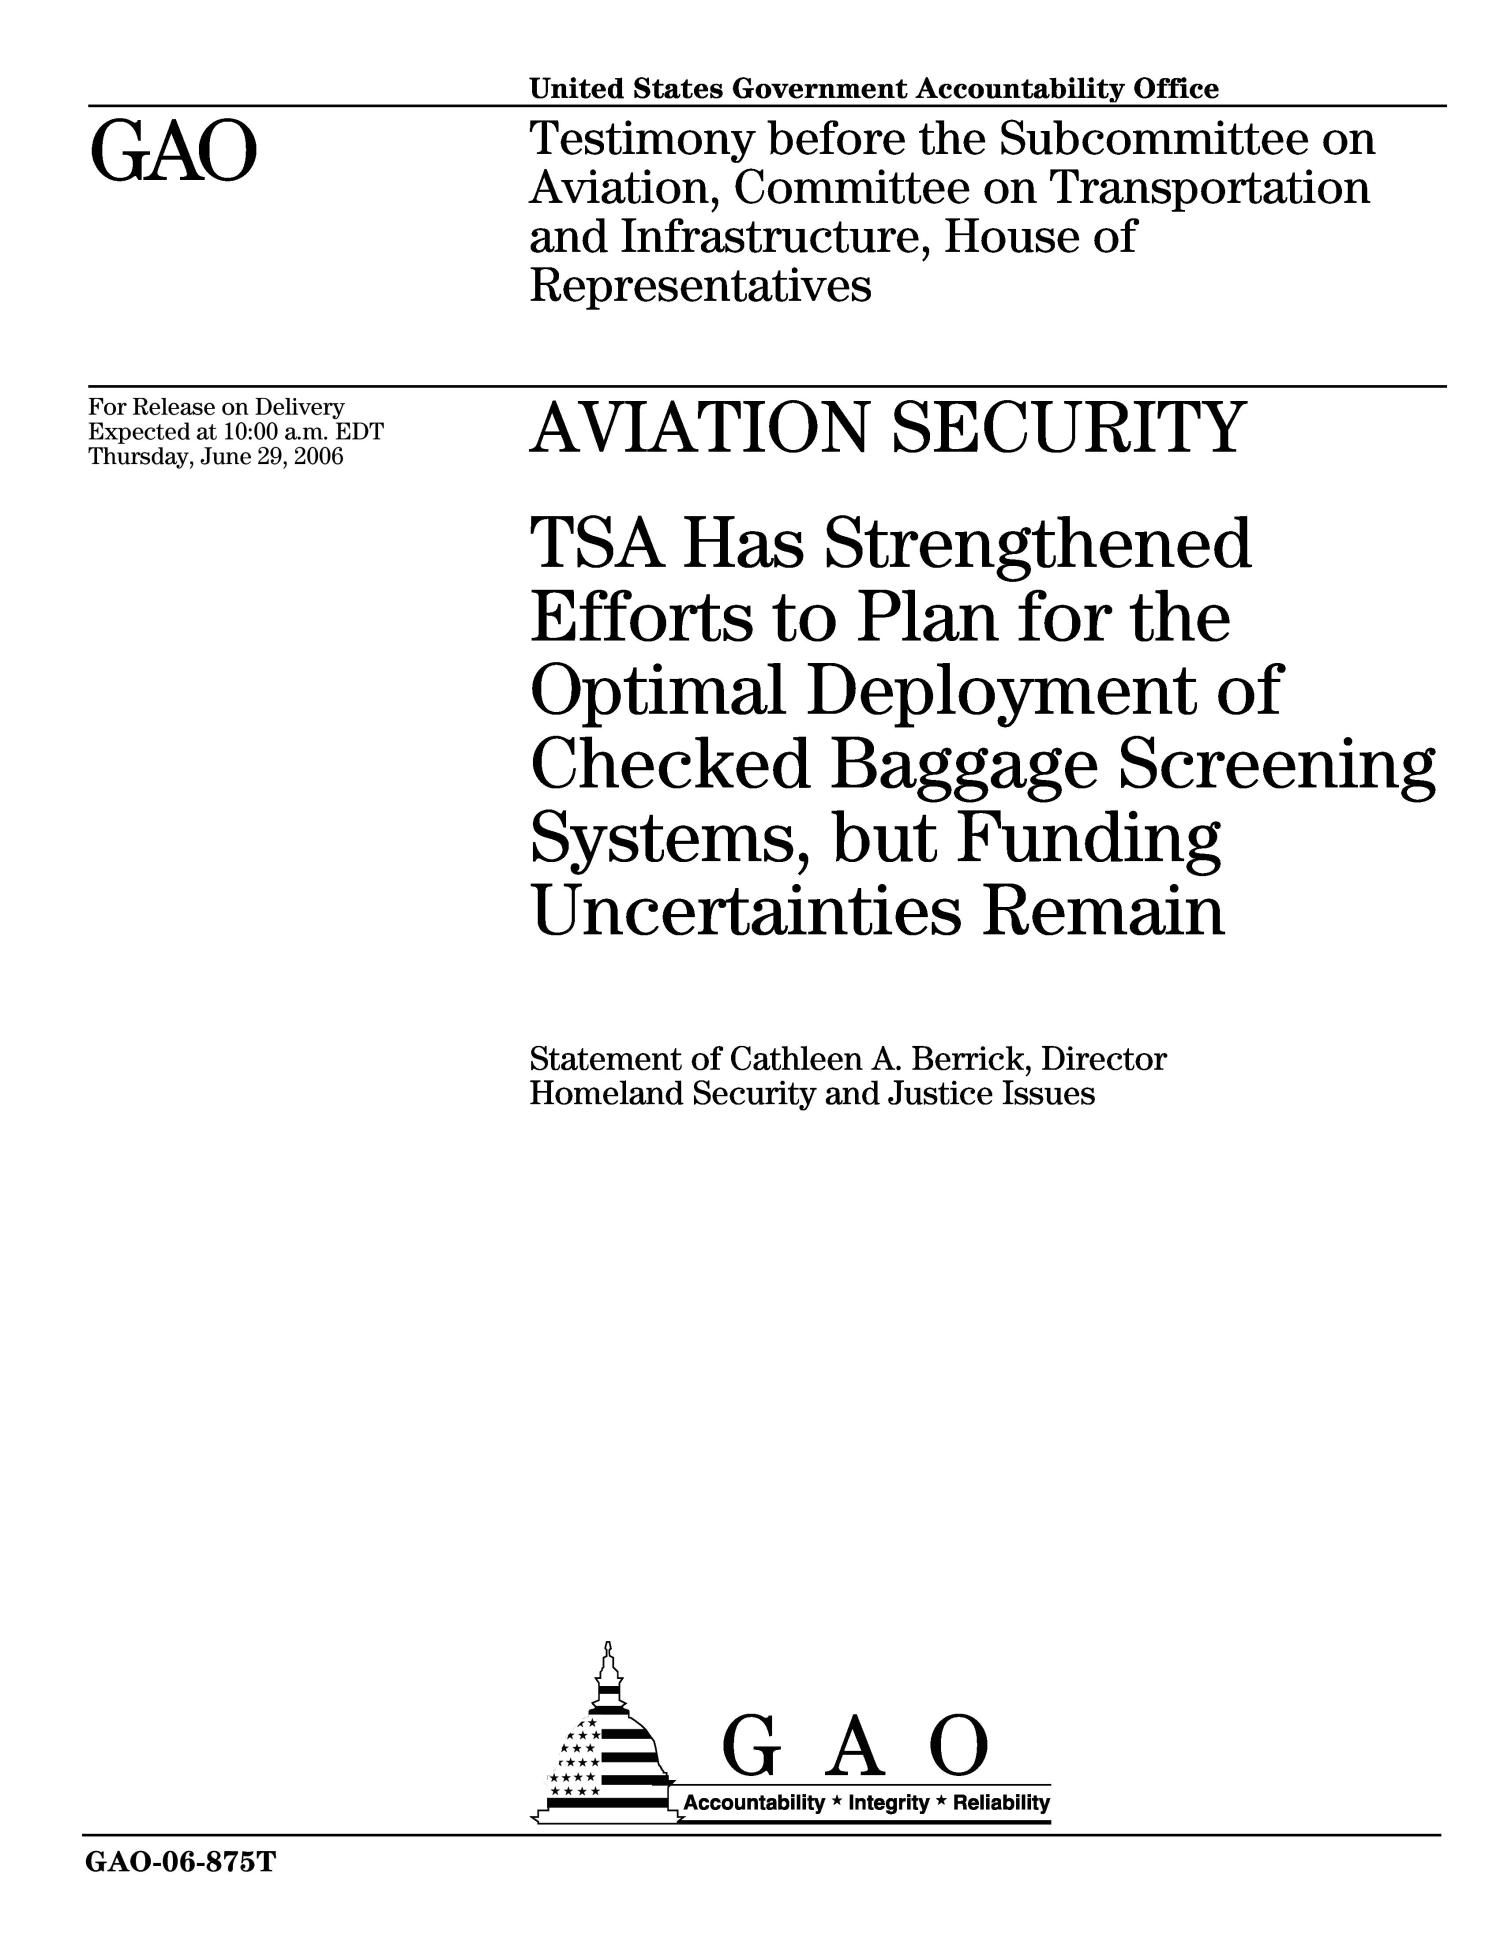 Aviation Security: TSA Has Strengthened Efforts to Plan for the Optimal Deployment of Checked Baggage Screening Systems, but Funding Uncertainties Remain                                                                                                      [Sequence #]: 1 of 30